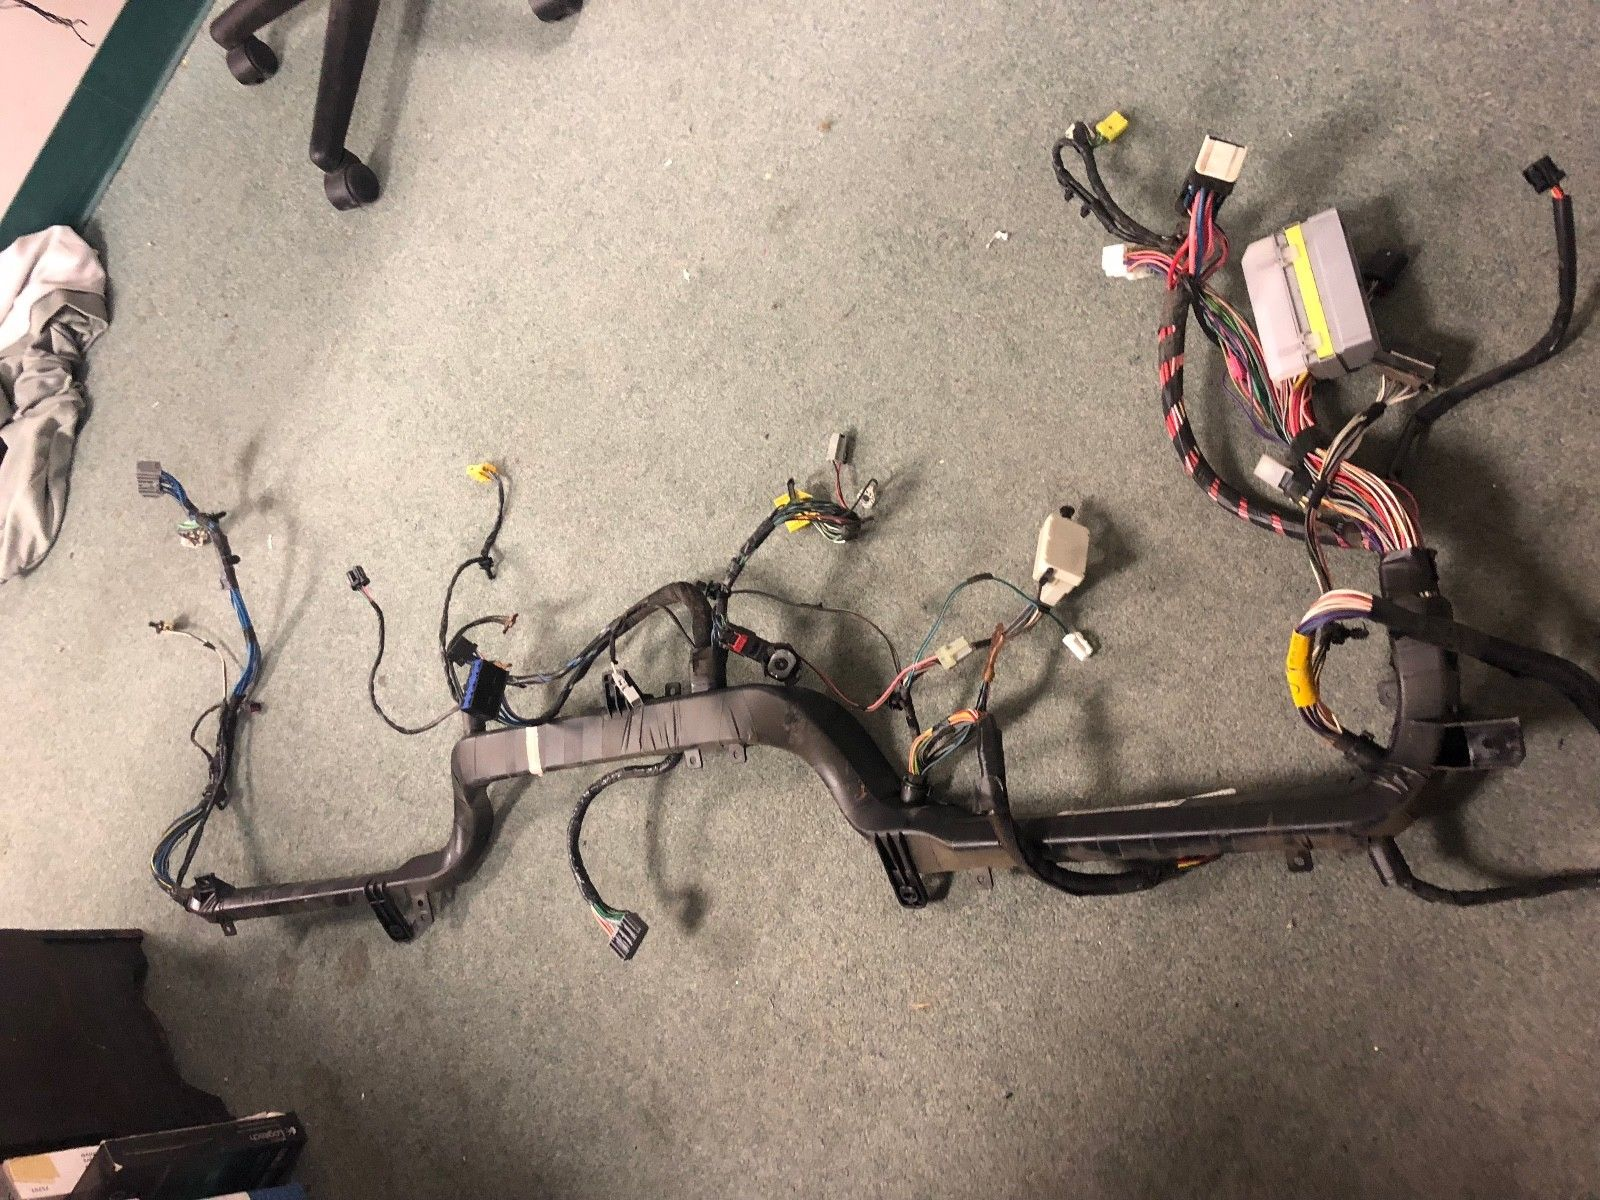 2004 Dodge Ram 1500 Dash Wiring Harness Oem 56051947ad P56051947ad Truck